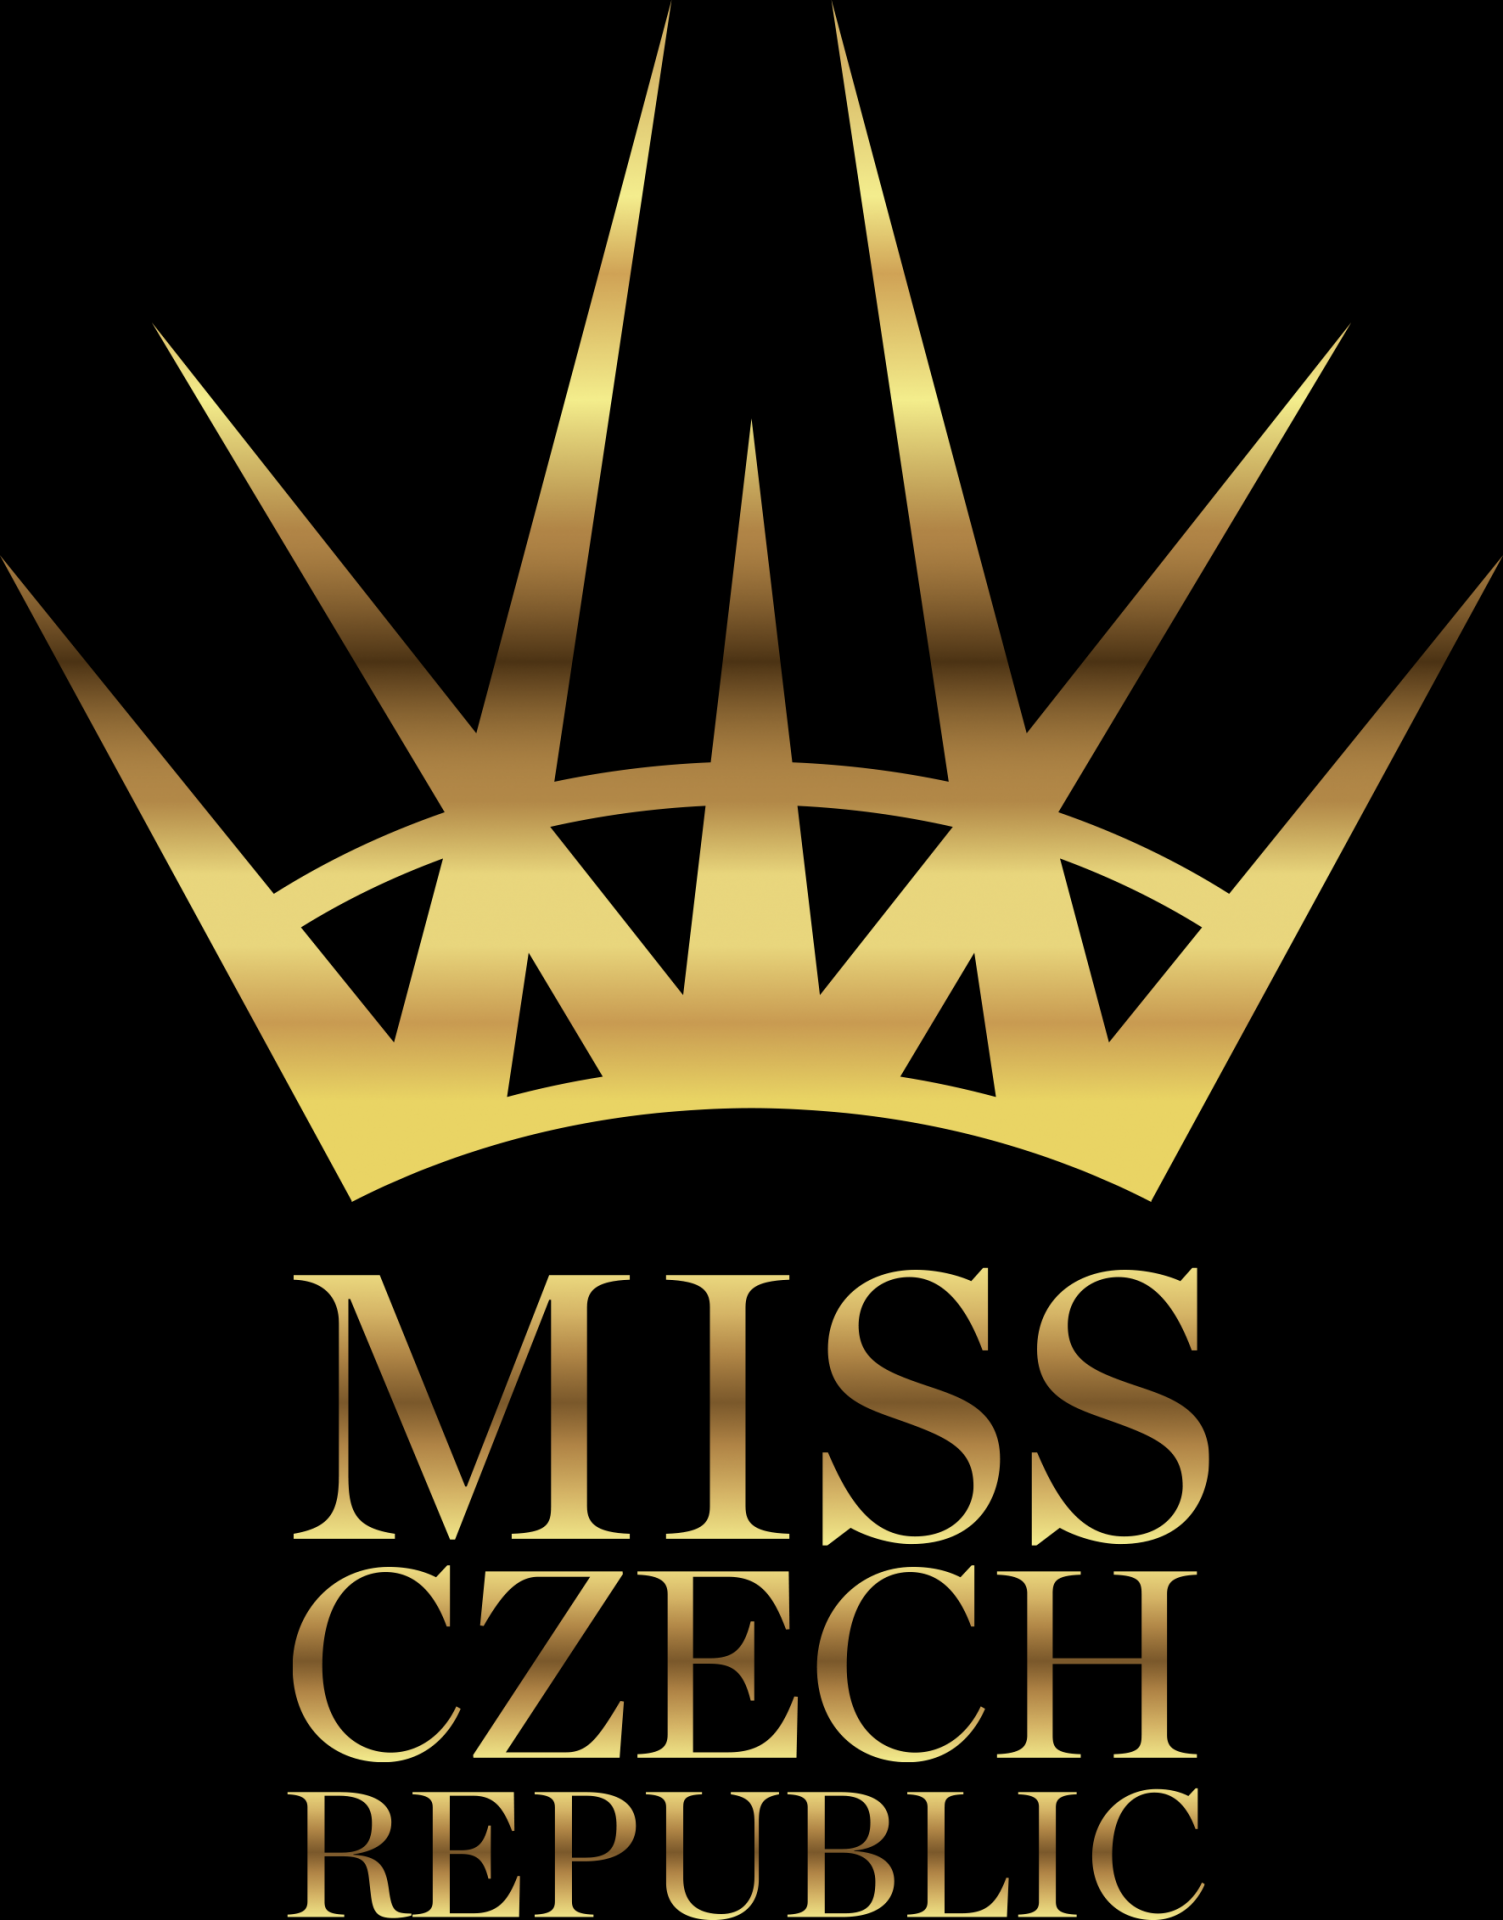 MISS CZECH REPUBLIC